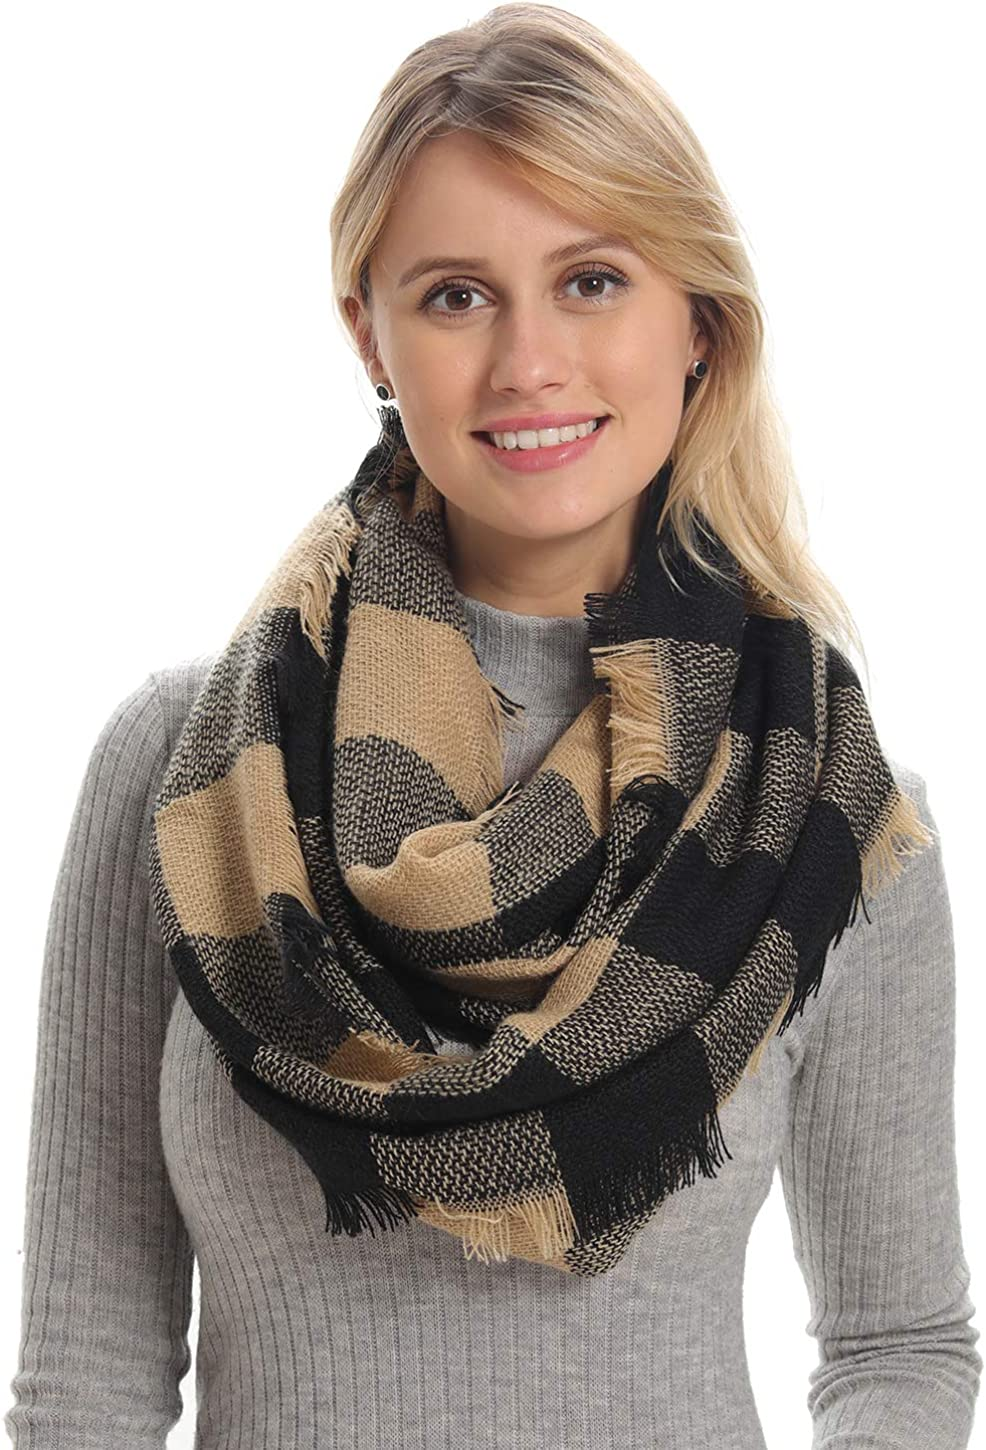 Women Plaid Infinity Scarf for Winter, Cashmere Feel, Cozy Warm for Winter